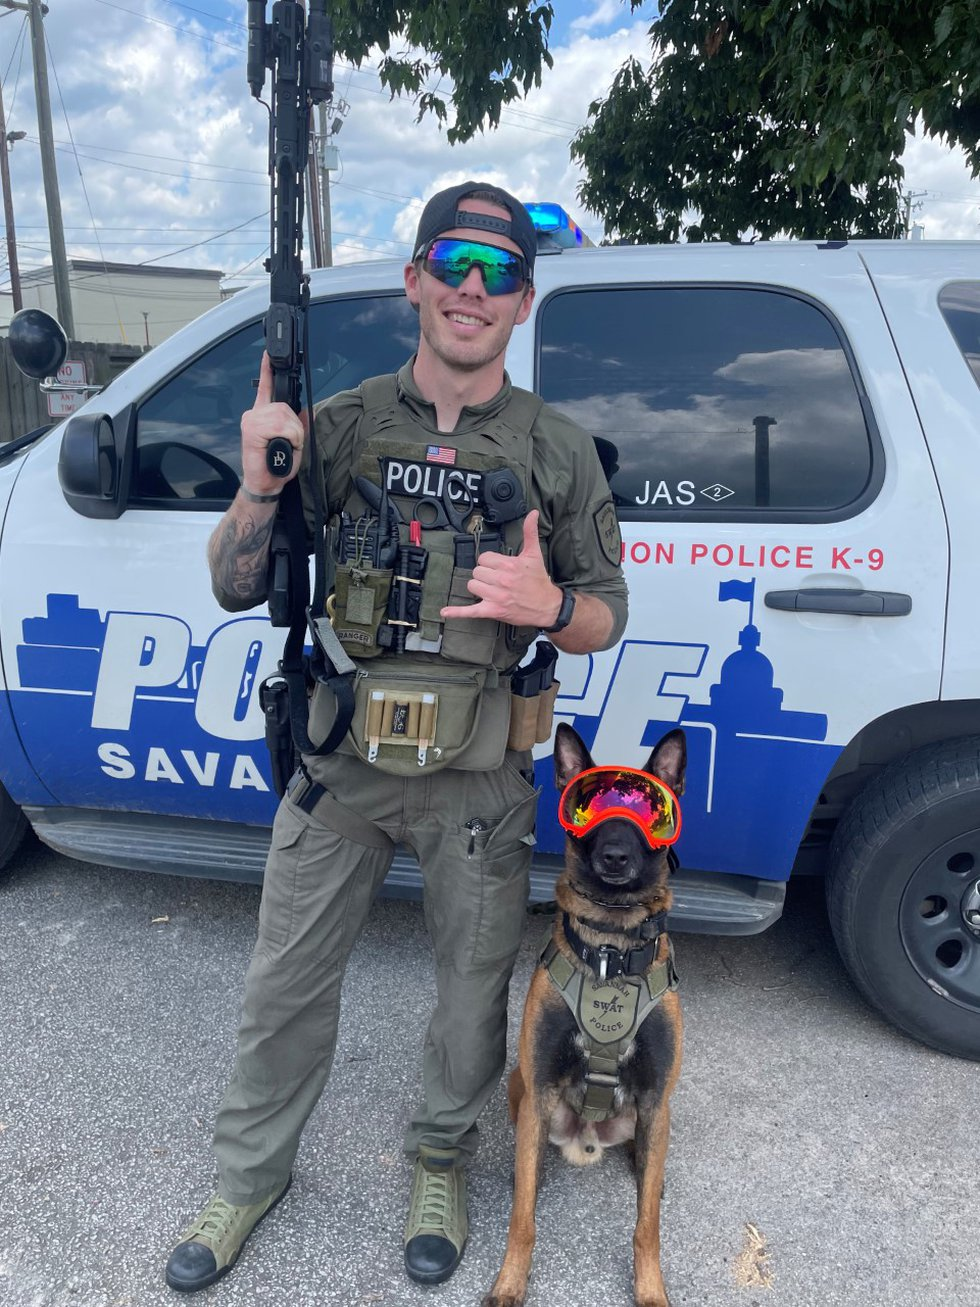 A candid moment between K-9 Jas and Savannah Police Officer Jon Lindsey.